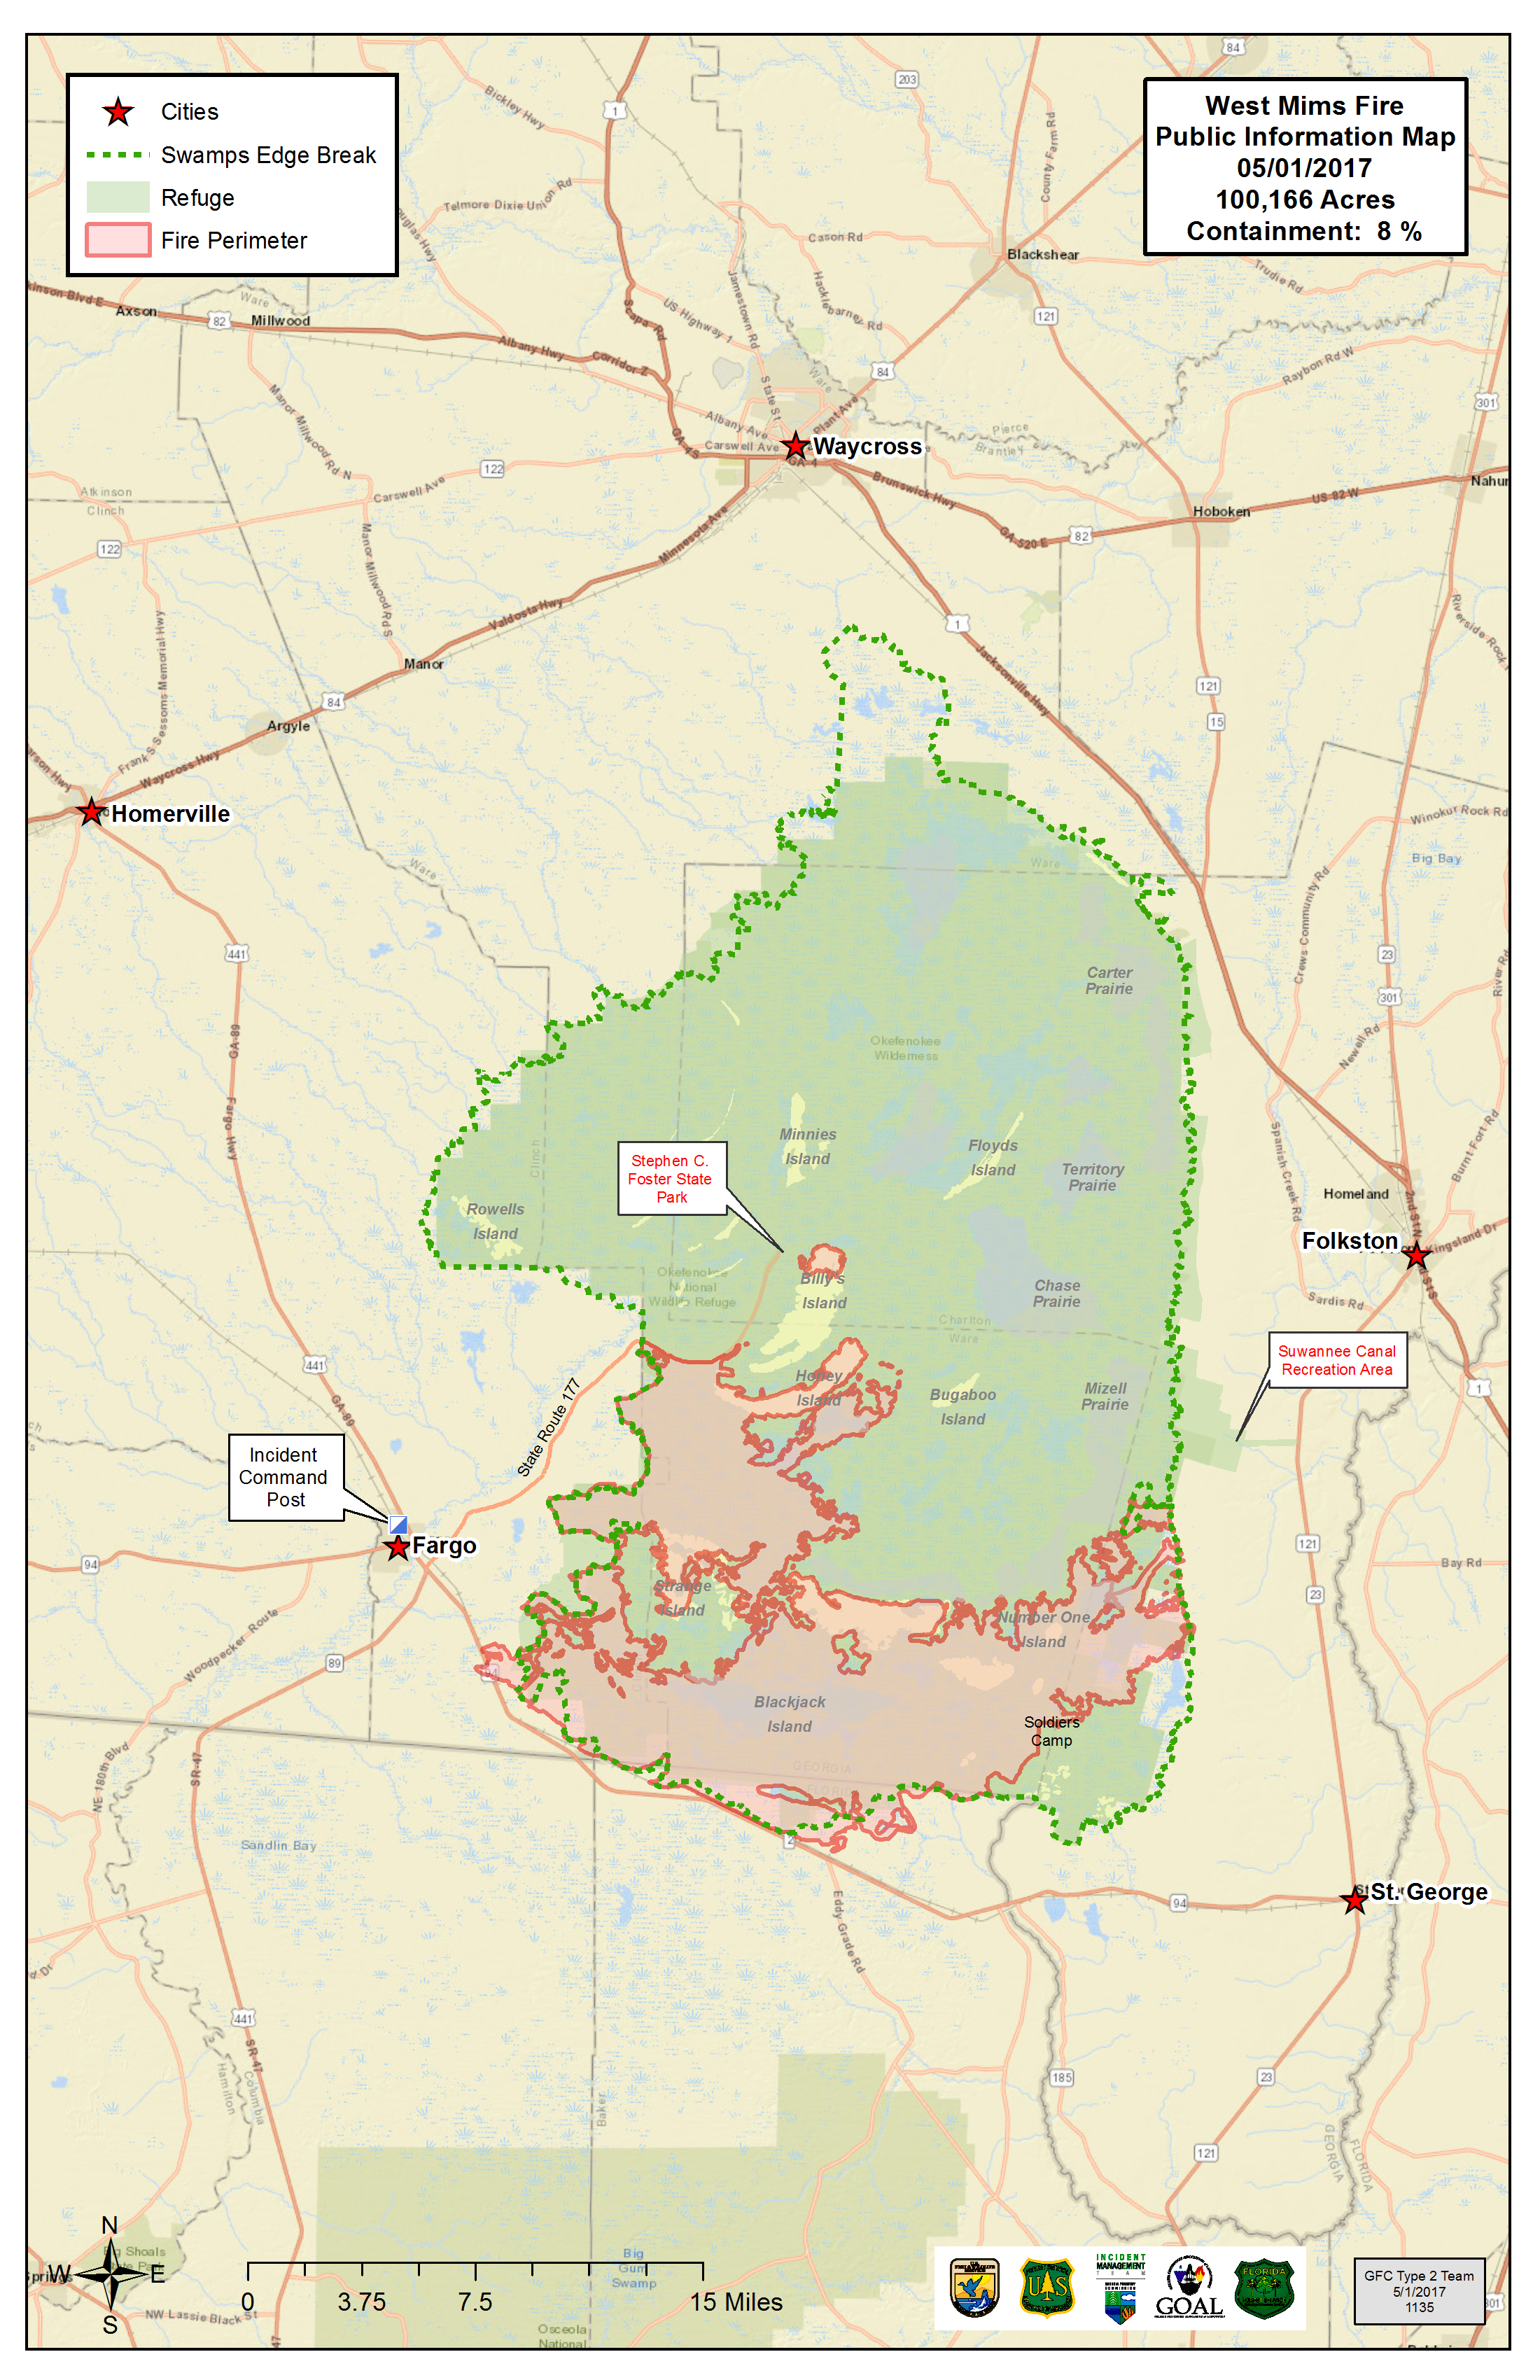 Okefenokee Fire Map.Massive Wildfire May Be A Good Thing For Georgia Swamp Wabe 90 1 Fm